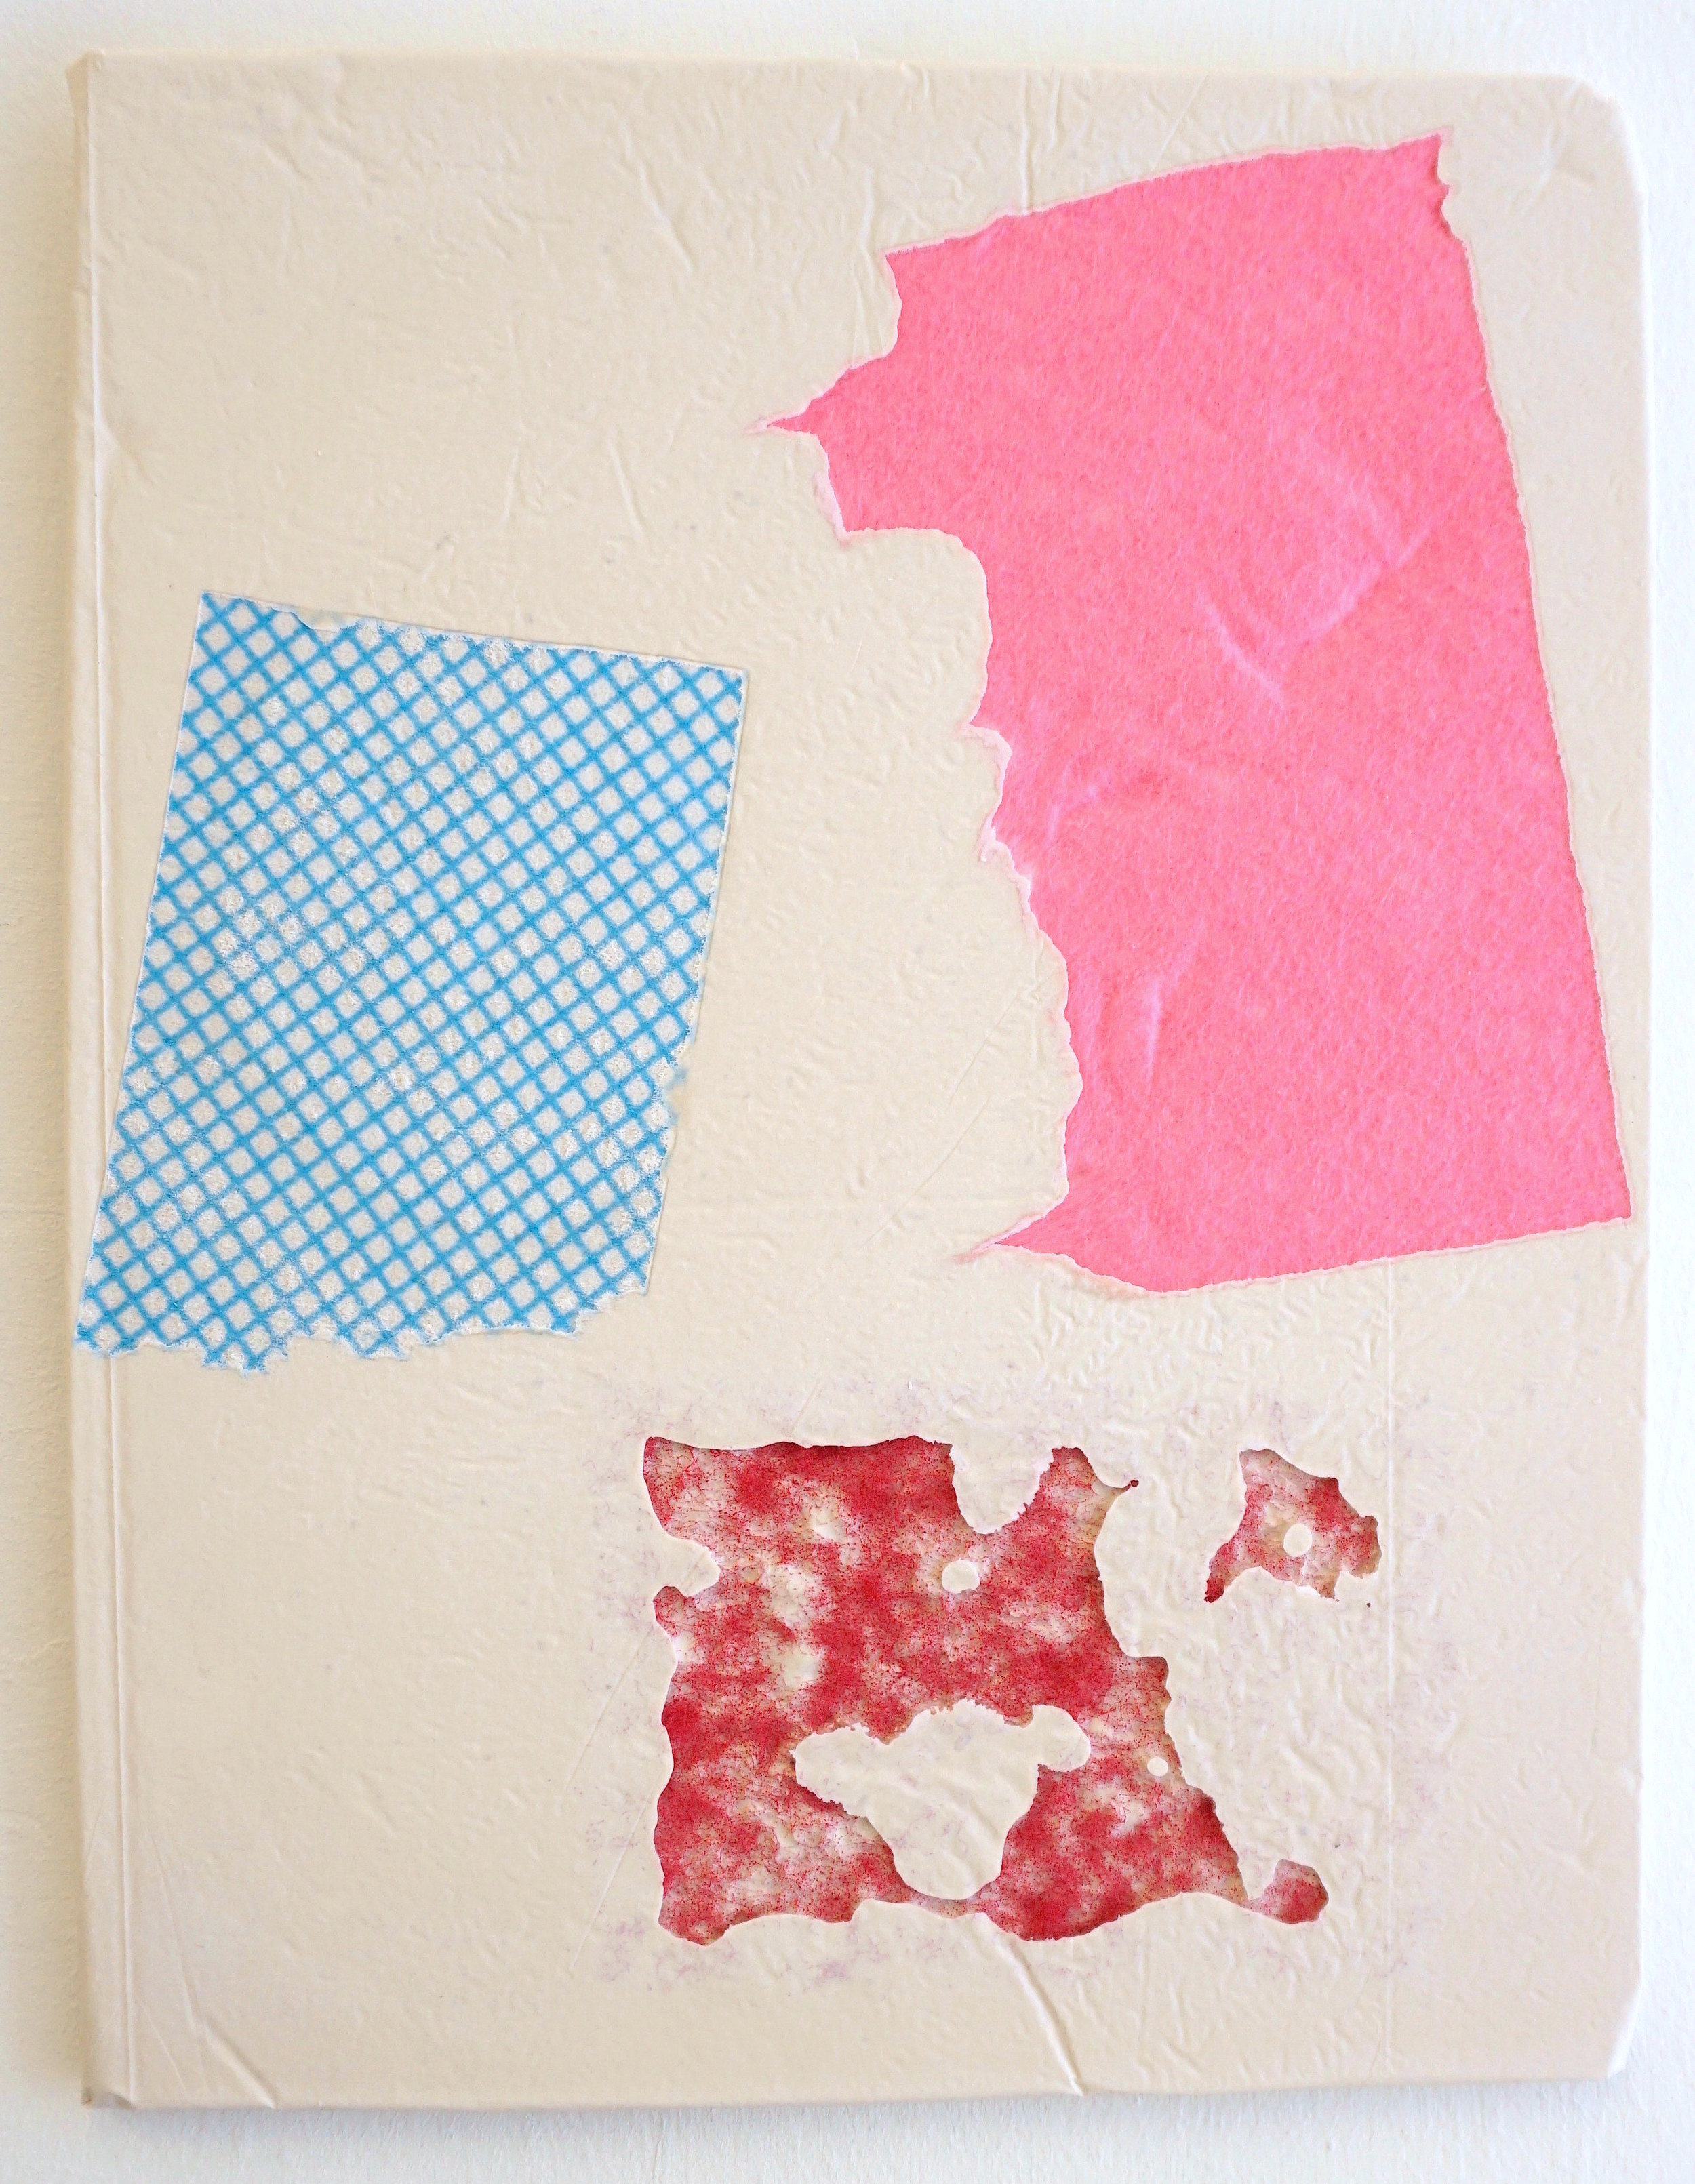 Domestic Bliss Fragment (red, blue, pink) | Composite, Mixed Media | 35 x 28 cm